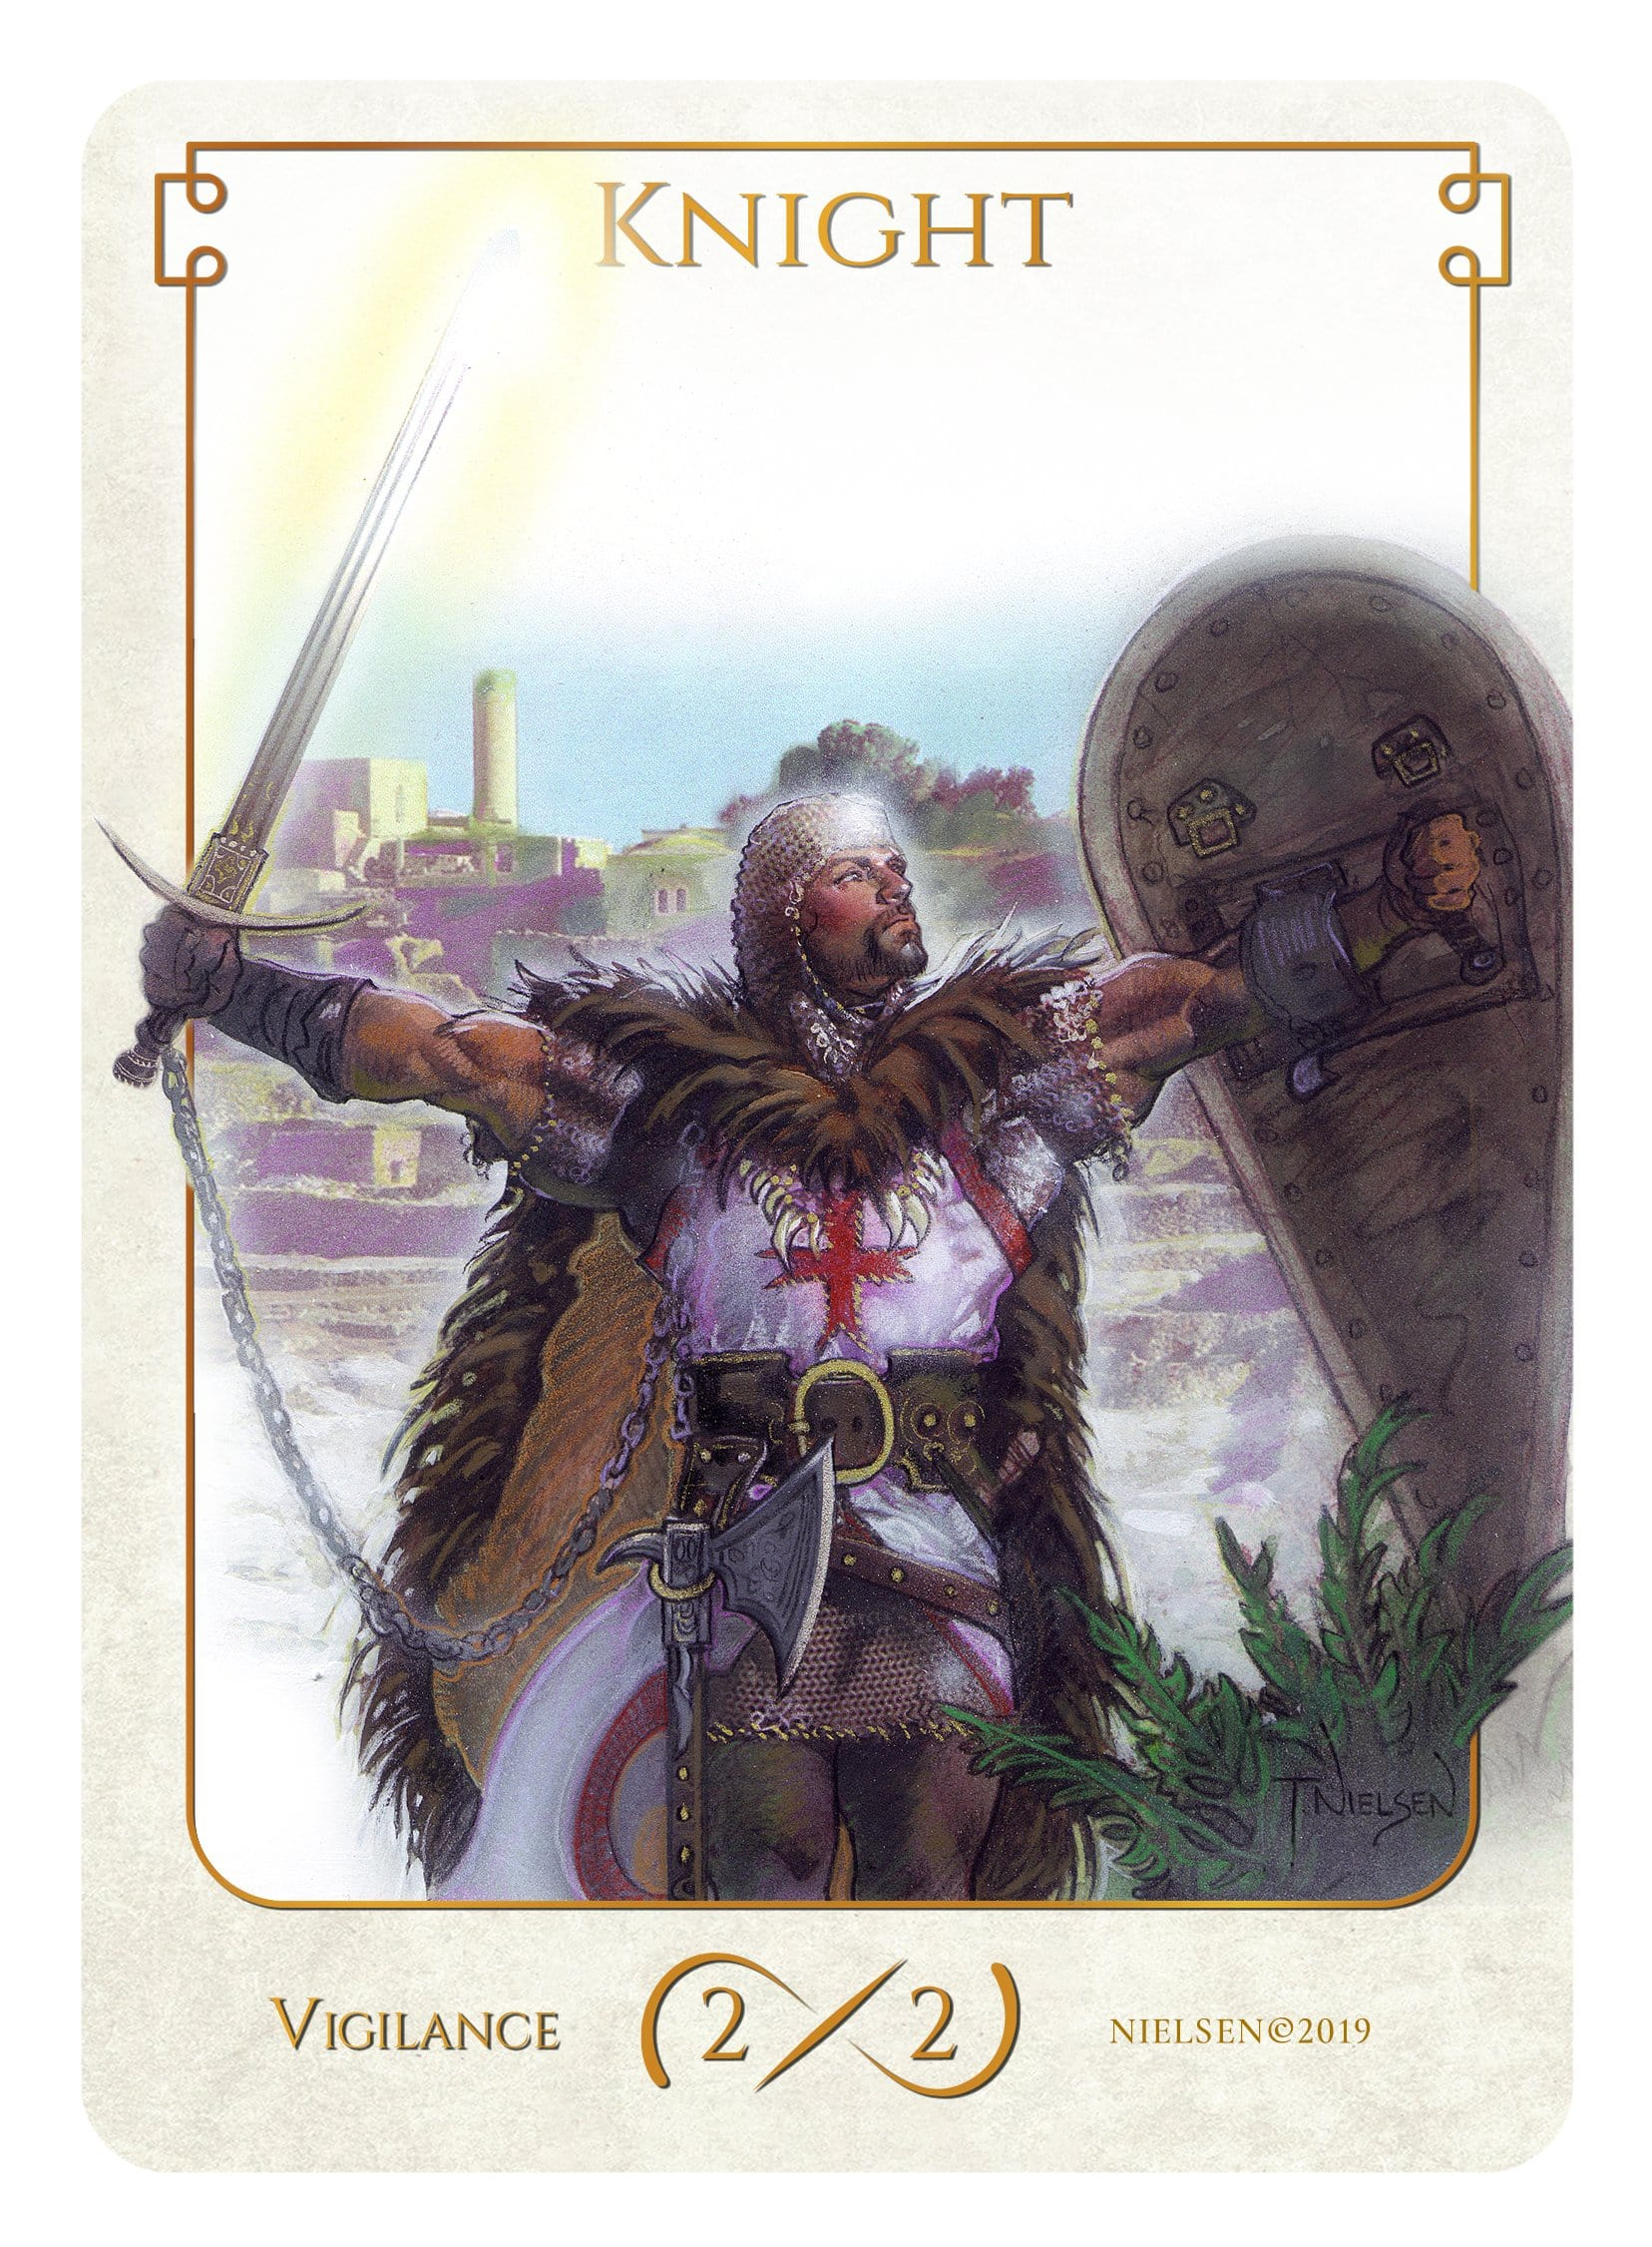 Knight Token (2/2 - Vigilance) by Tokens of Spirit